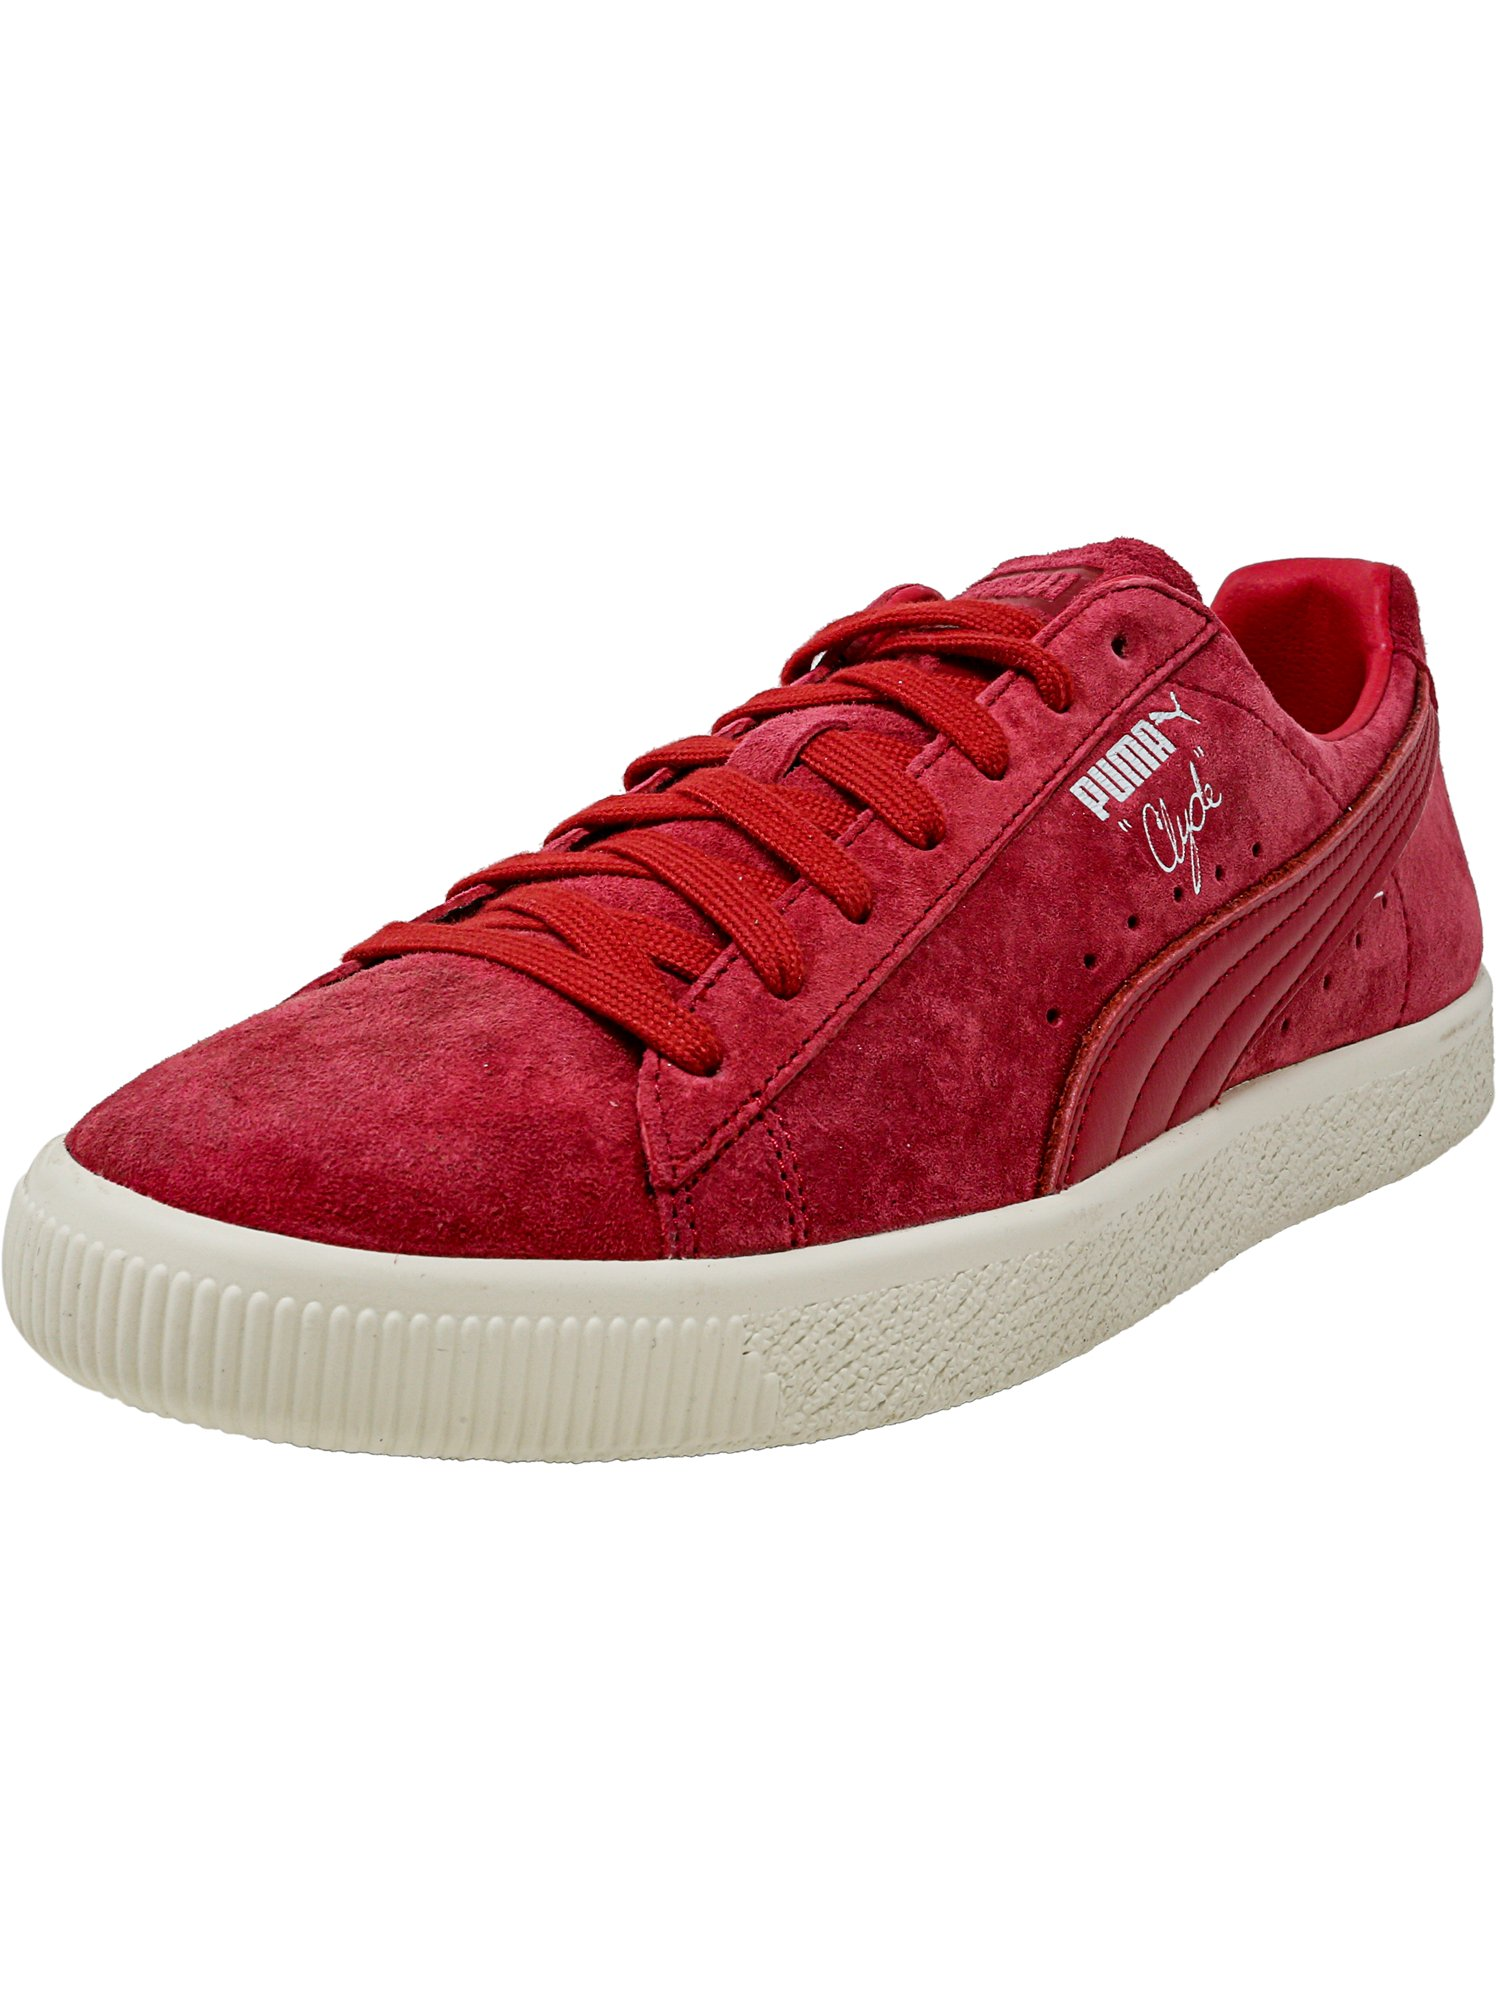 Puma Men's Clyde Normcore Chili Pepper / Ankle-High Suede Fashion Sneaker - 11M